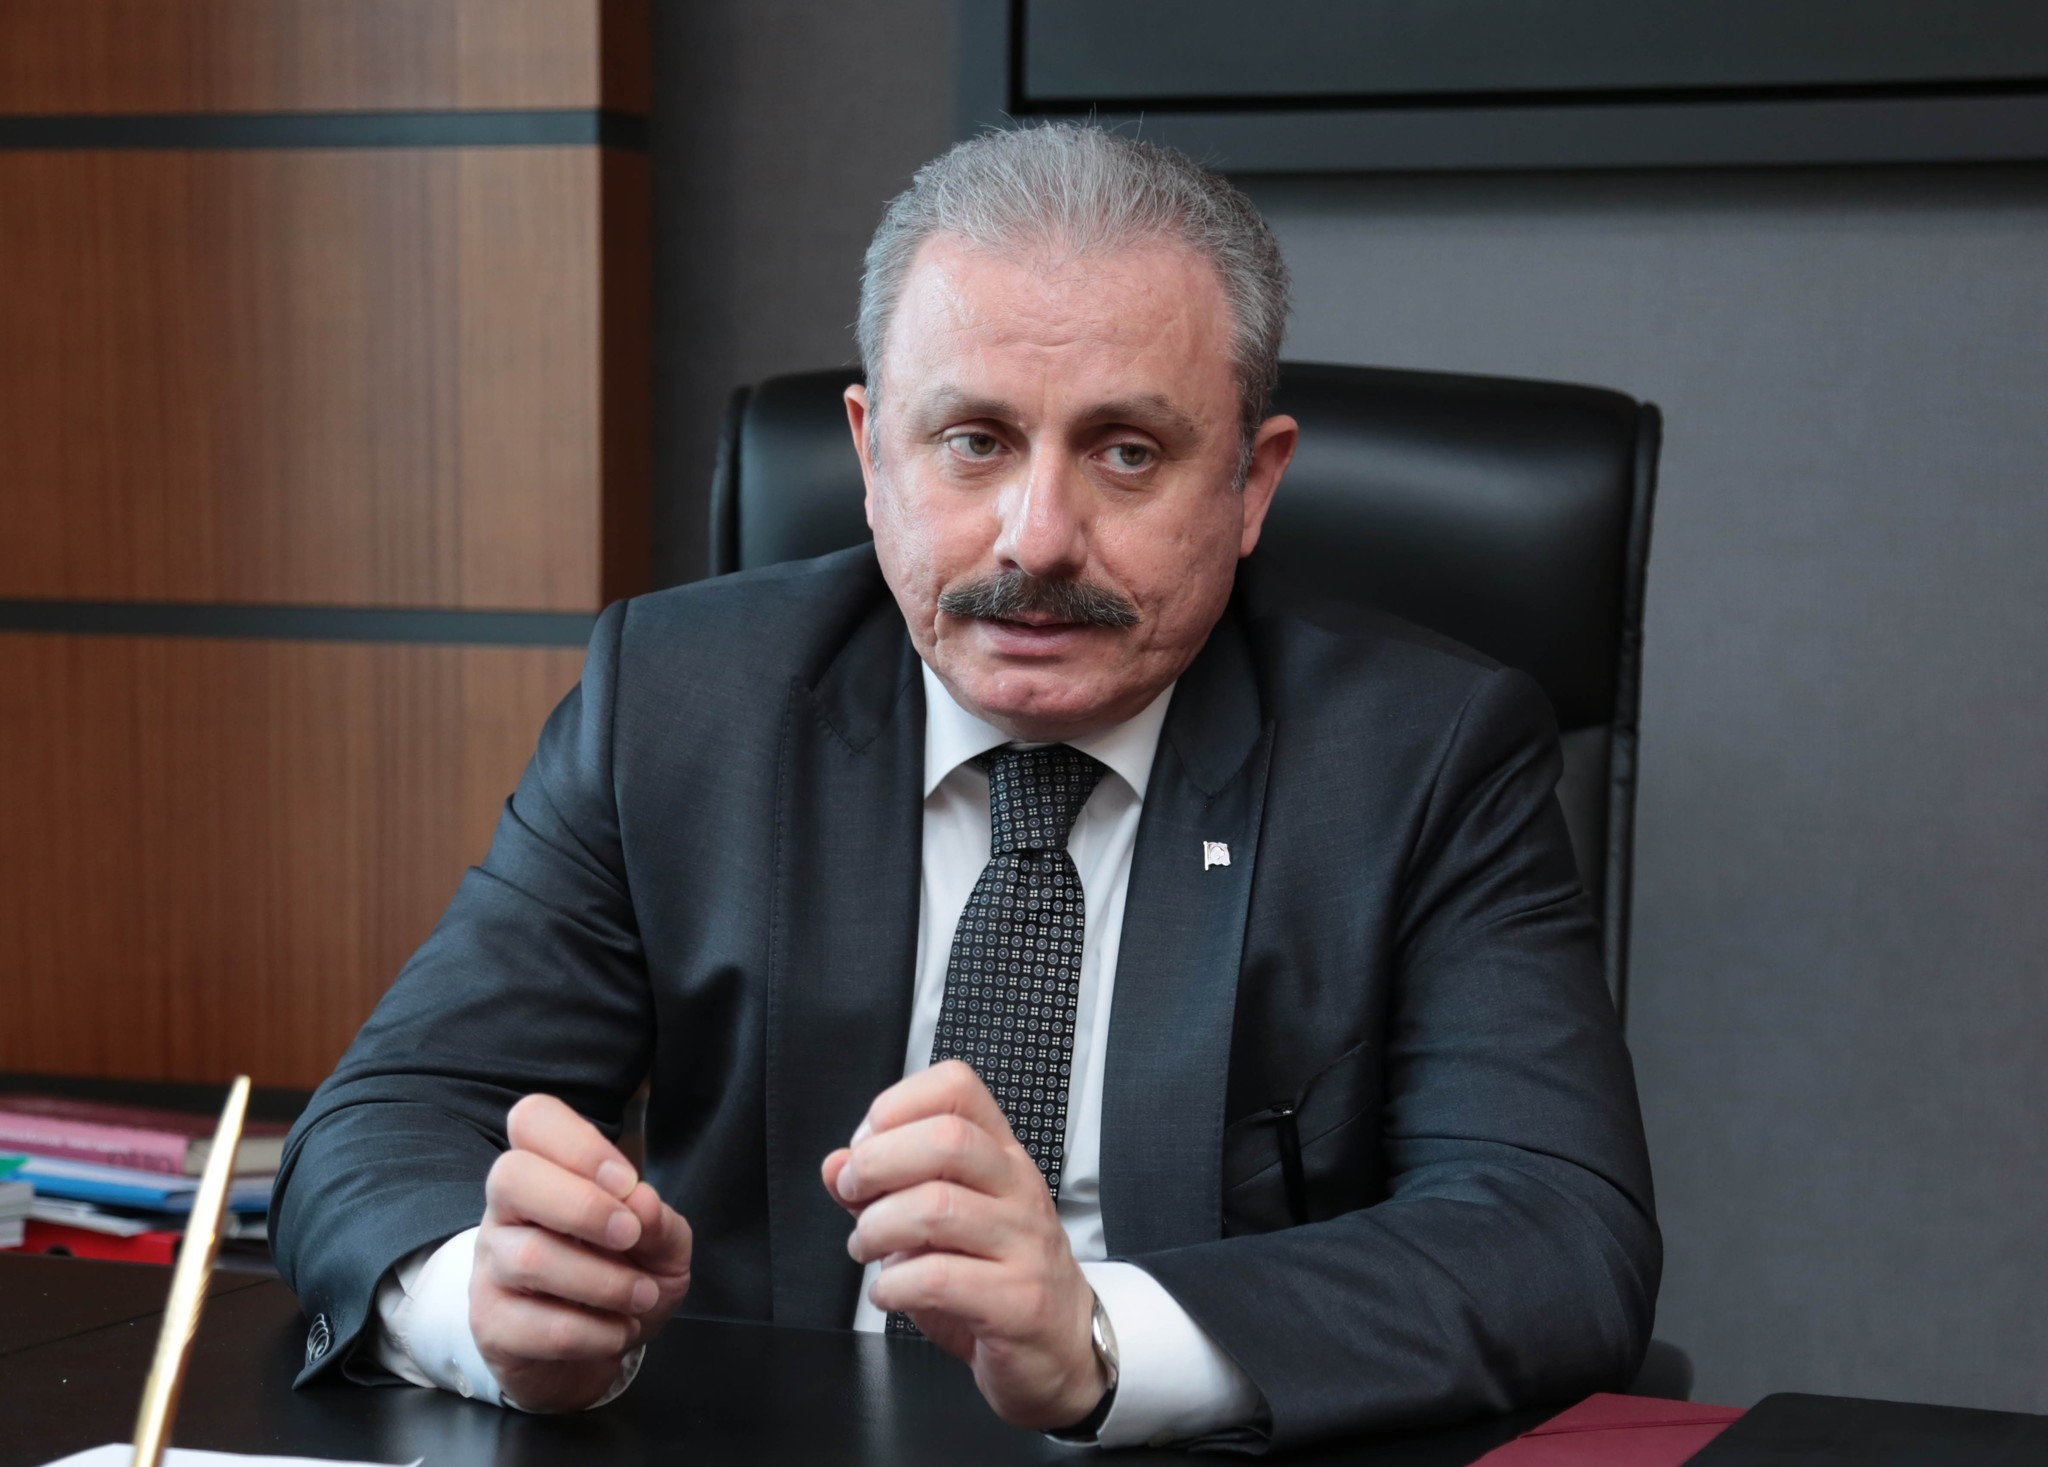 Speaking on the Parliamentu2019s reform agenda, Prof. Mustafa u015eentop said that after the alliance bill the next priority will be a new bylaw and adjustment laws.